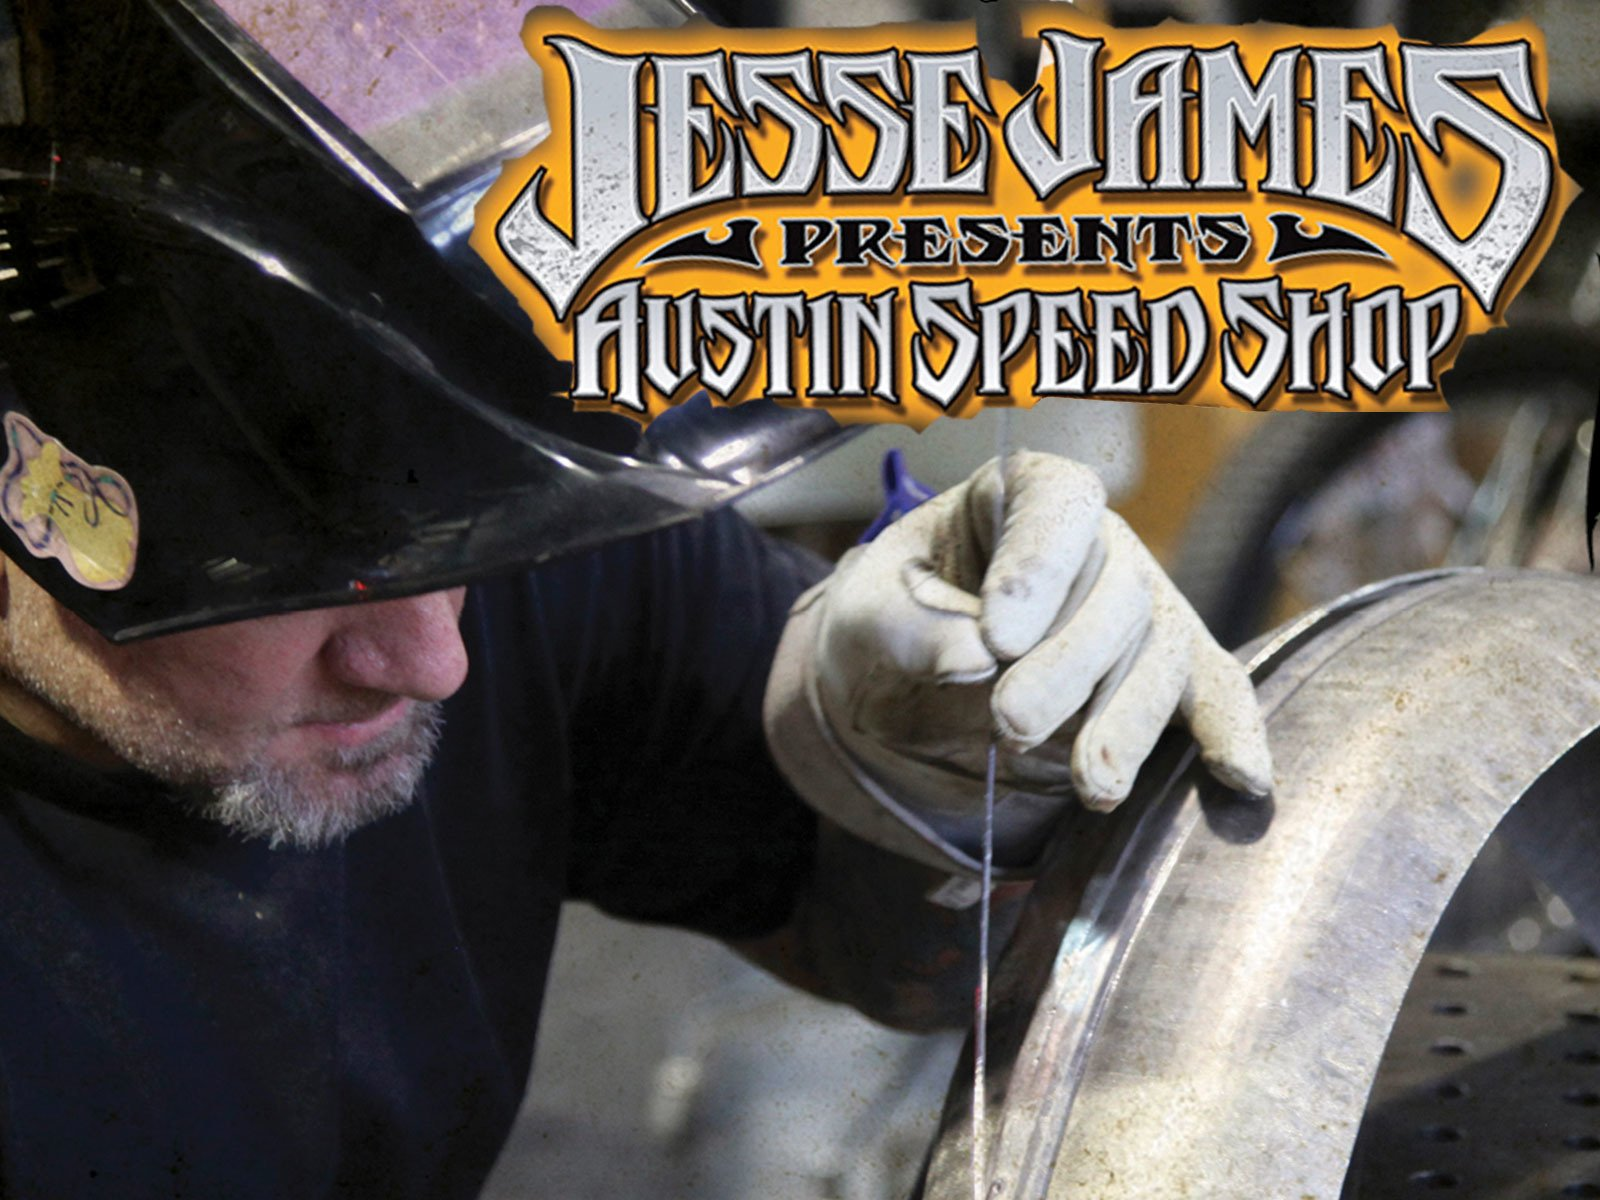 Jesse James Austin Speed Shop - Season 1